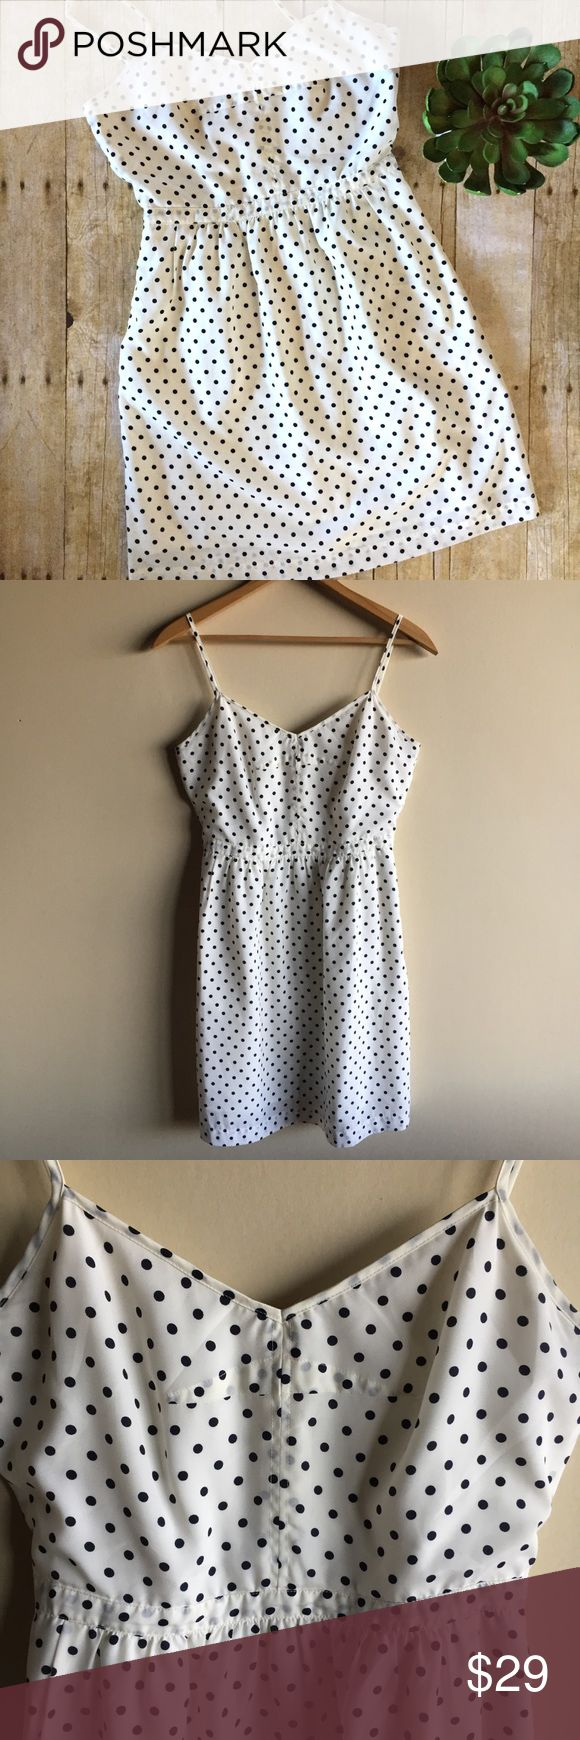 "J. Crew polka dot dress with pockets By J. Crew factory, off white and black polka dotted dress with adjustable straps. Lined. Side pockets. Measures 17"" from underarm to underarm, 13.5"" across waist and 35"" long. 100% silky feeling polyester. Excellent condition! ""Seaside Cami Dress"" J. Crew Factory Dresses"